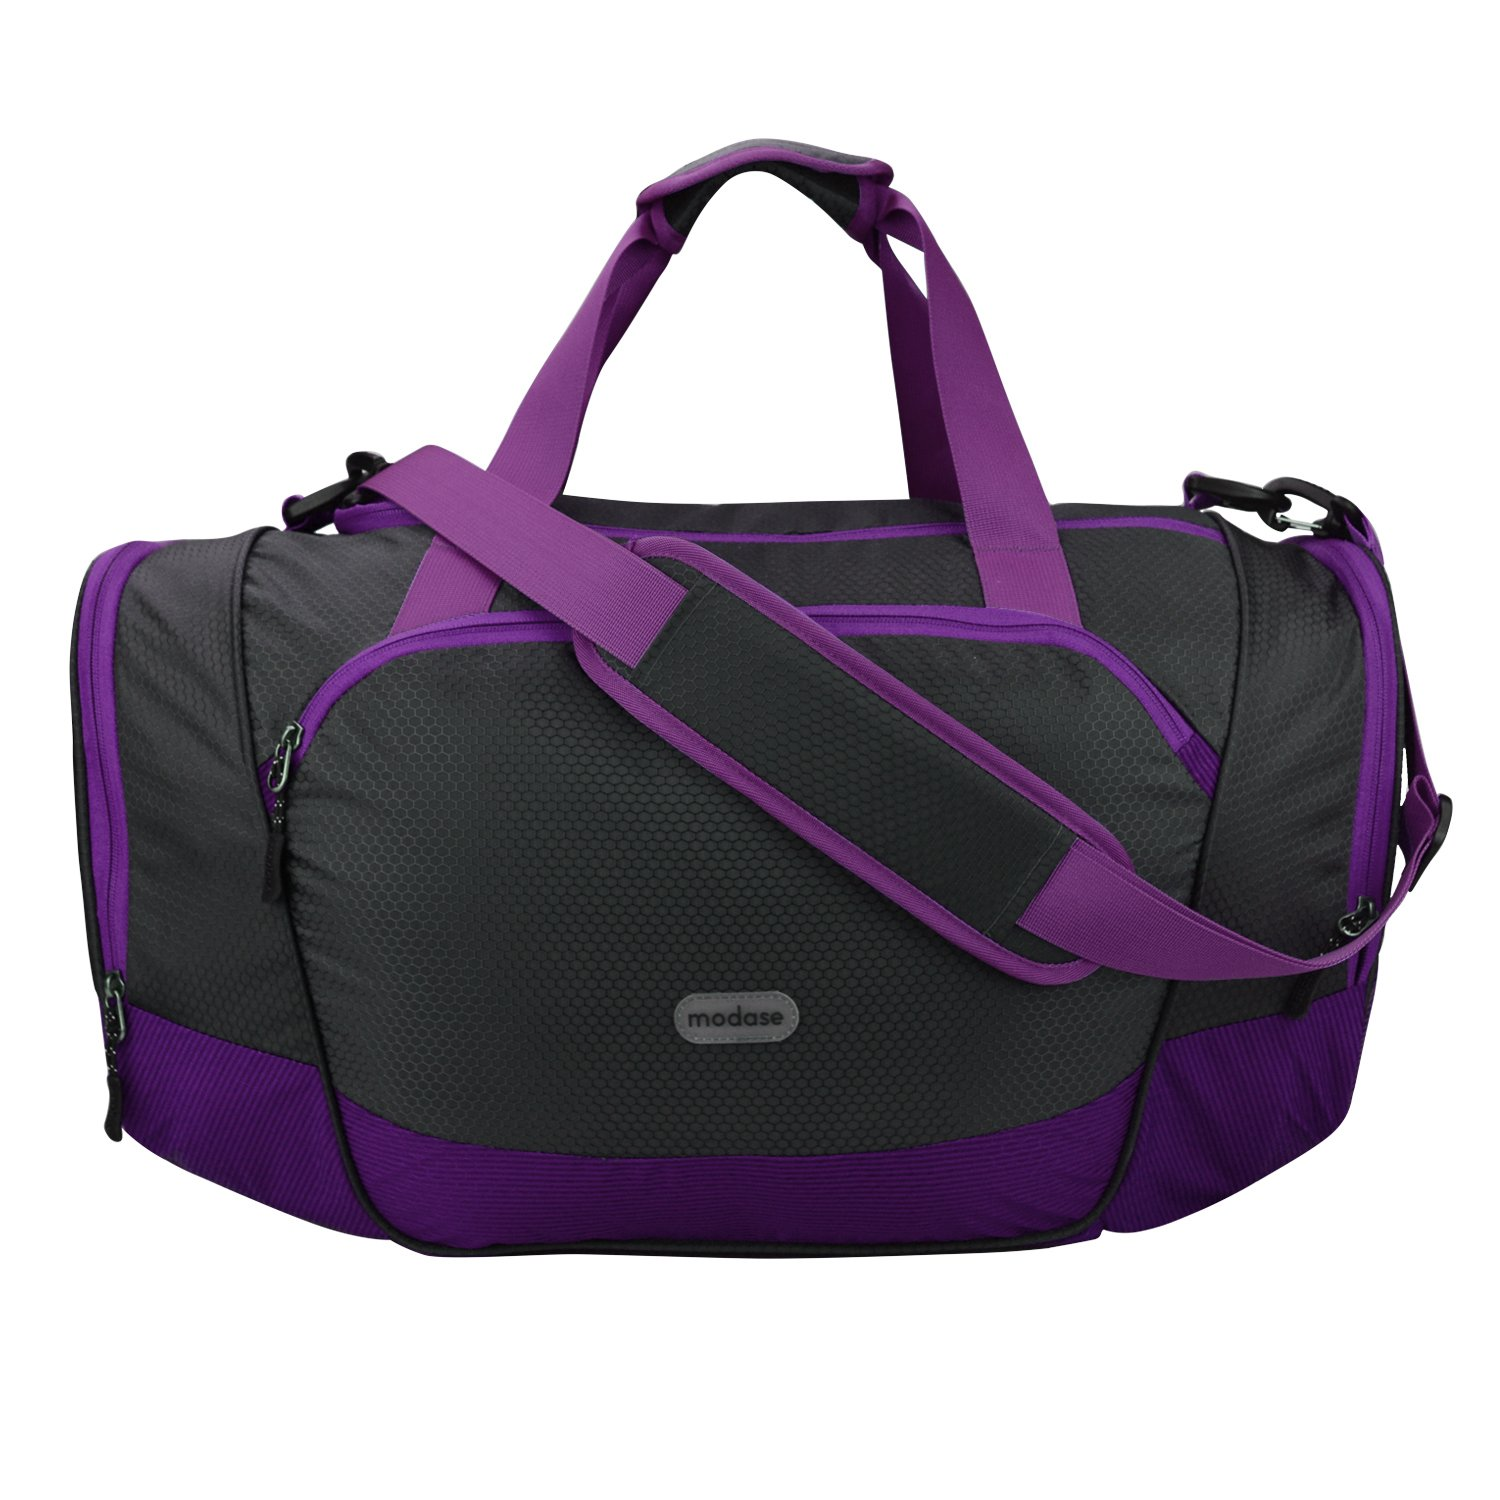 modase Duffel Bag Gym Bag Travel Duffle Luggage Sport Bag with Shoe Compartment